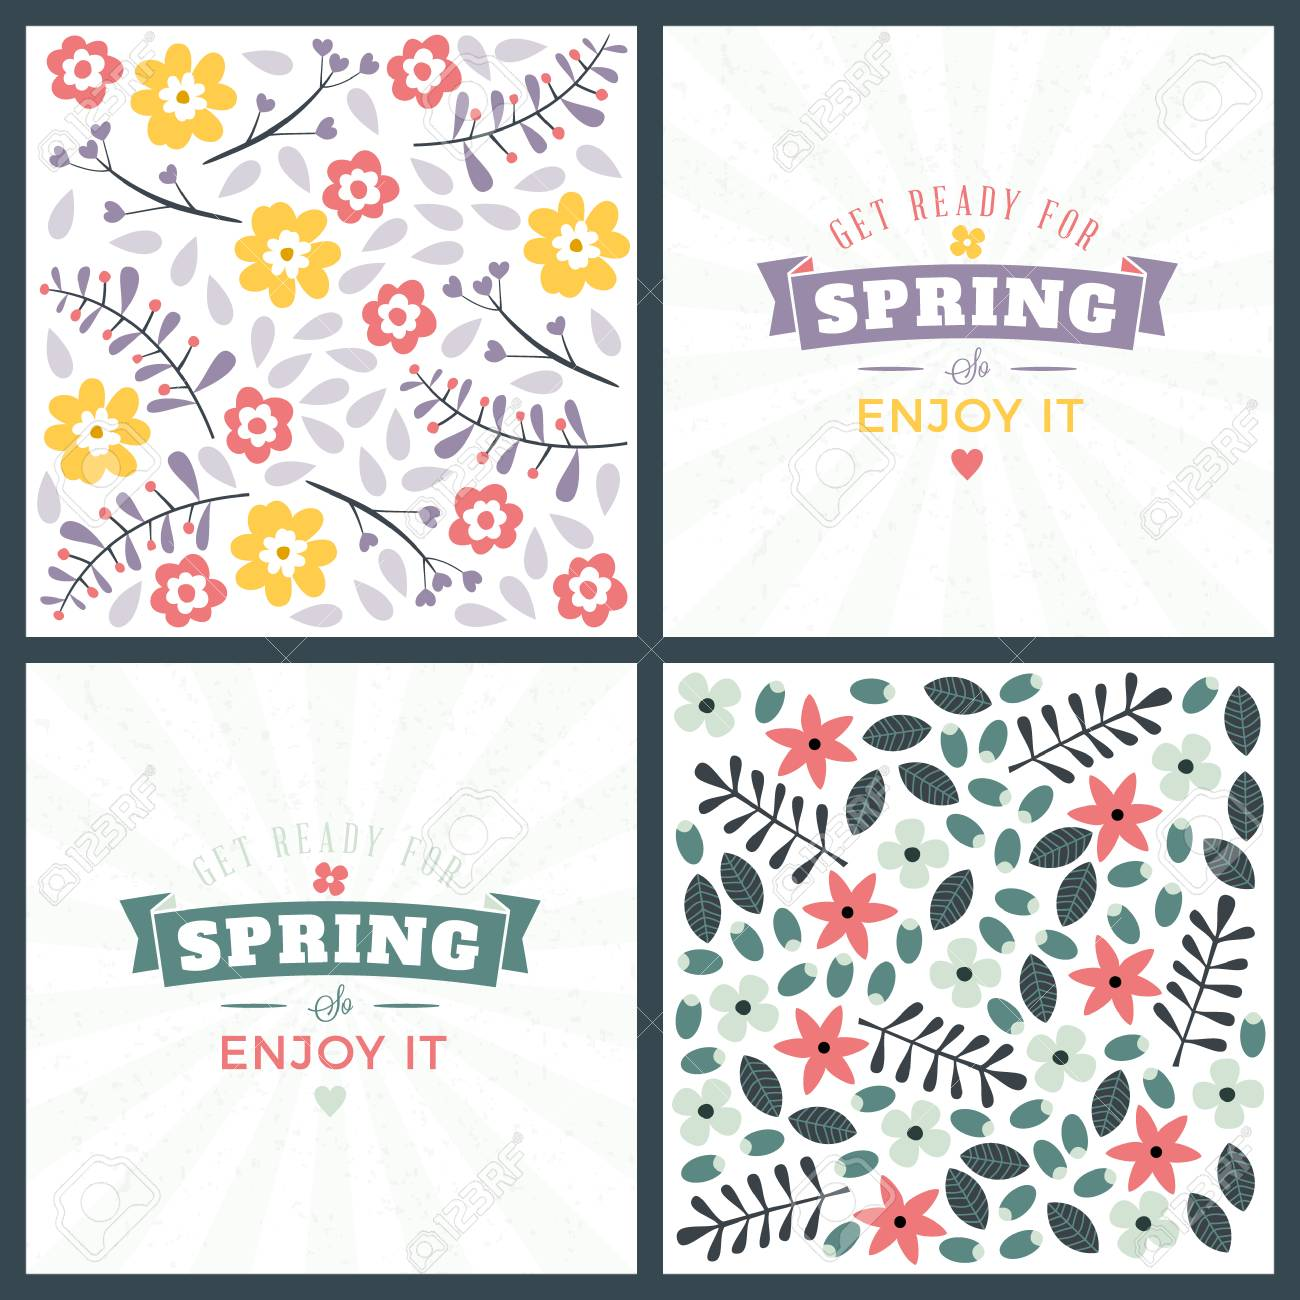 Spring Holiday Greeting Card Design Vector Floral Greetings